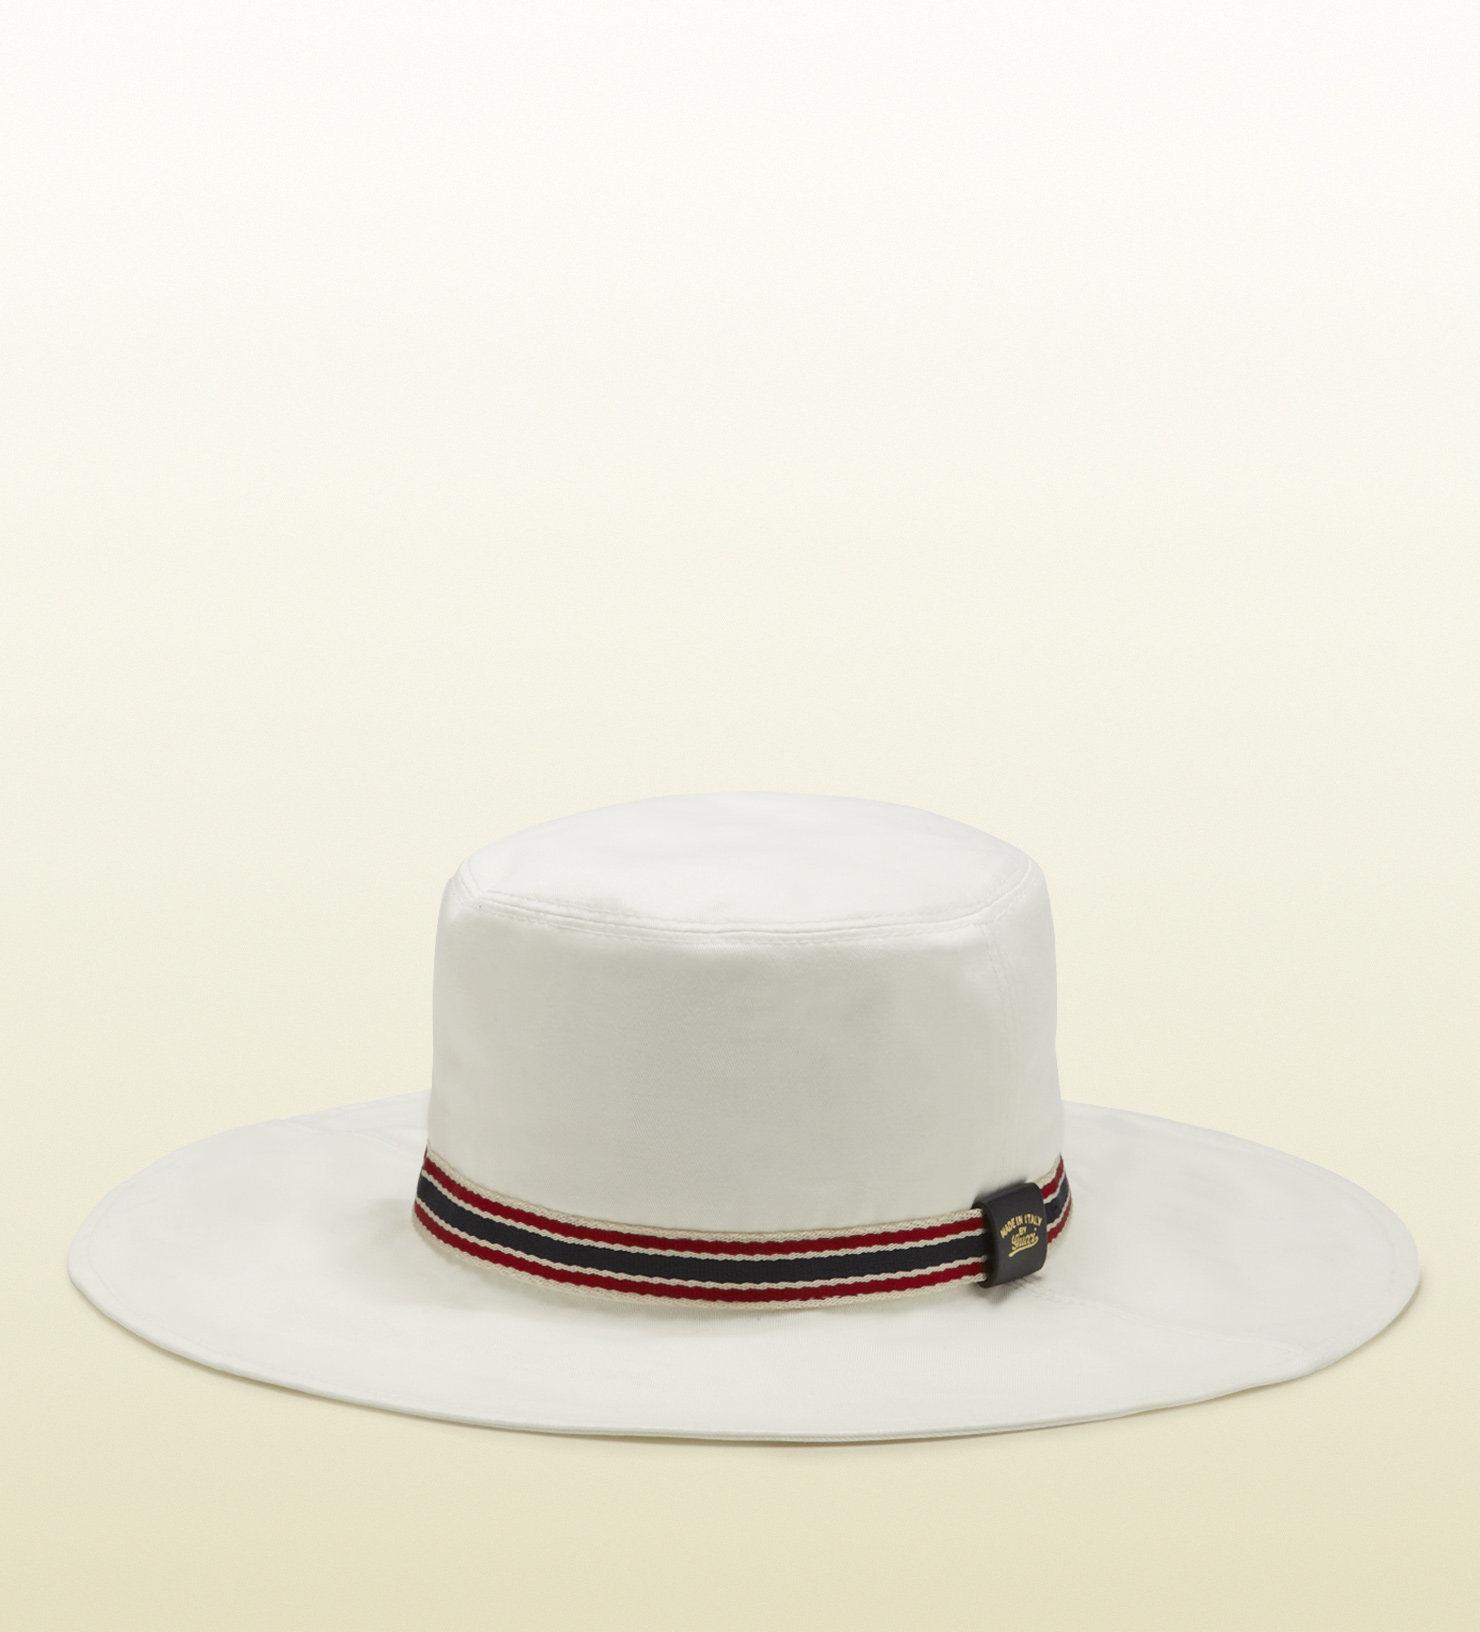 White Gucci Hat - BrandAlley |White Gucci Hat